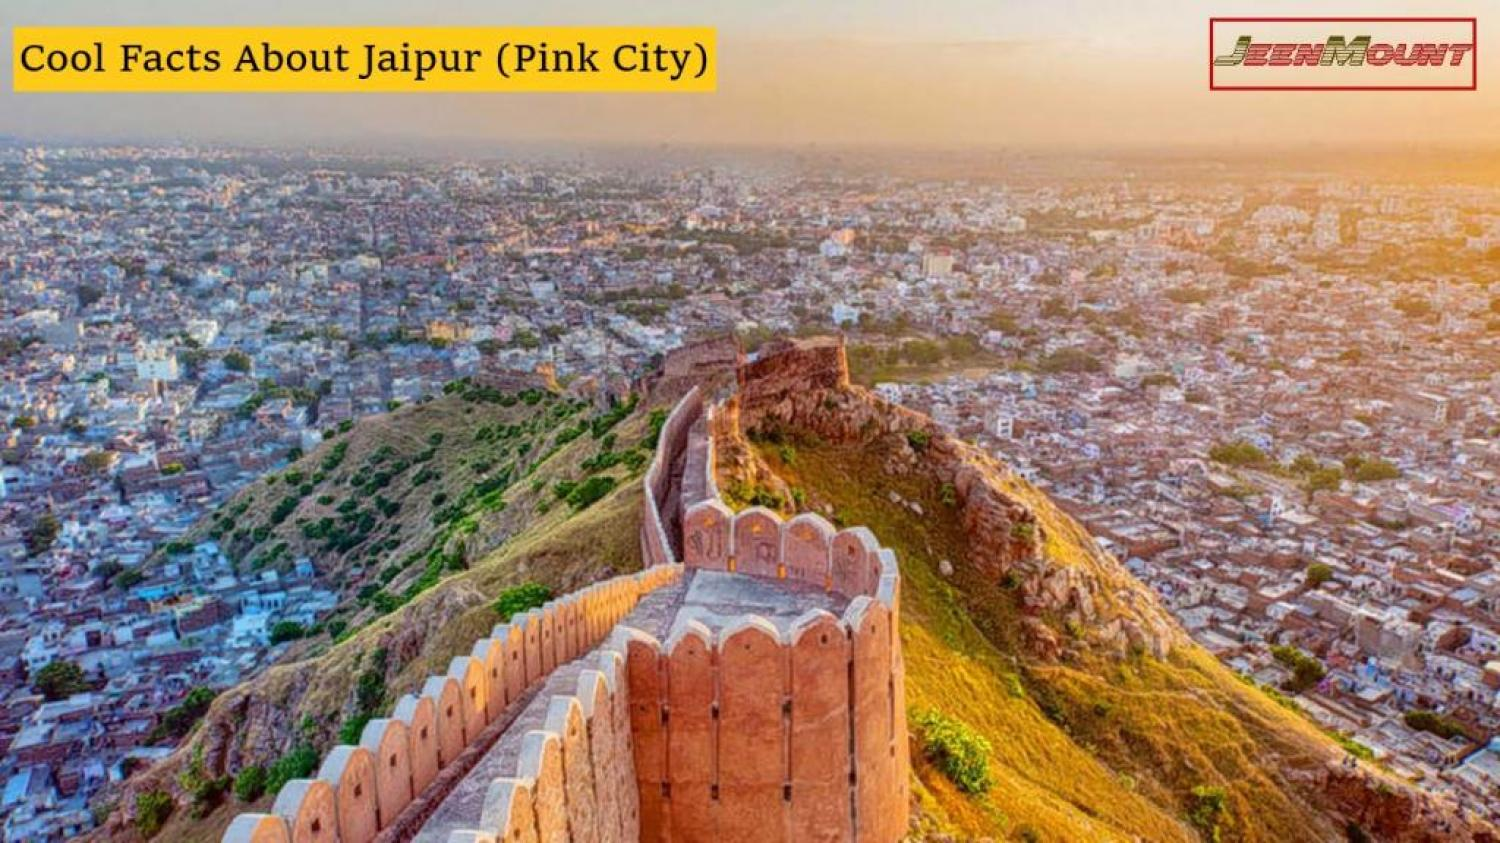 Cool Facts about the Jaipur